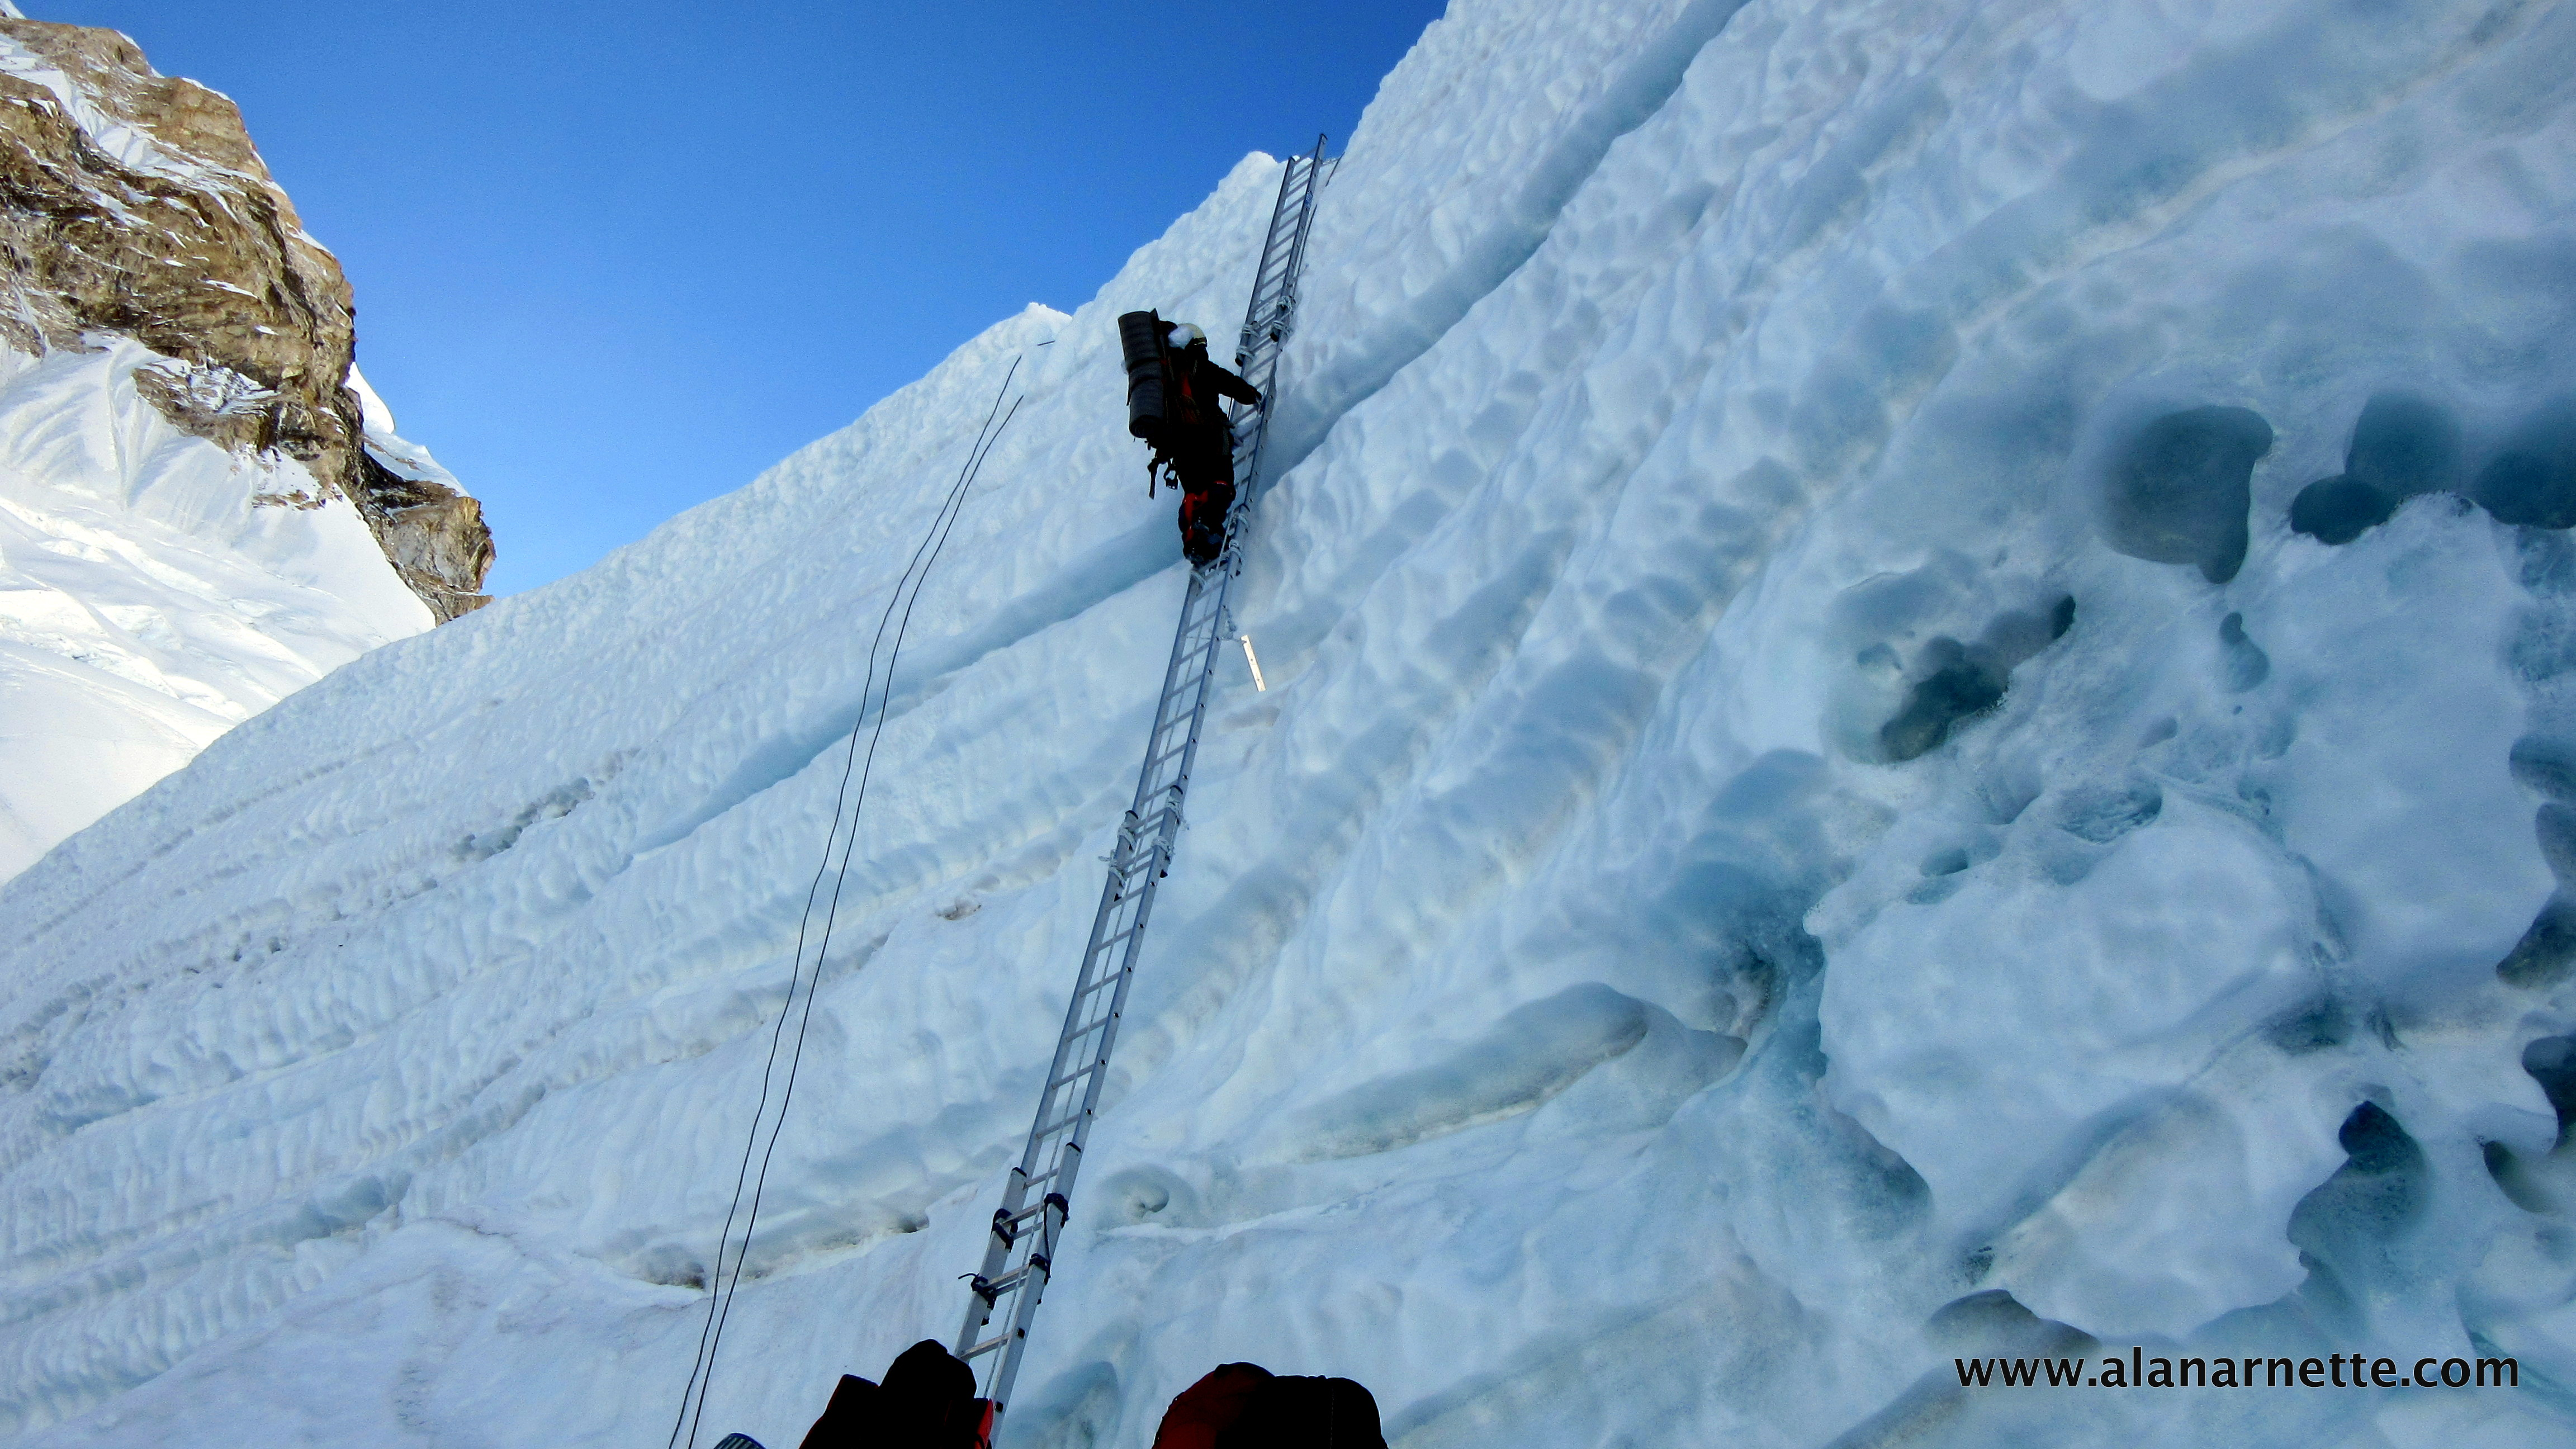 Climbing in the Khumbu Icefall